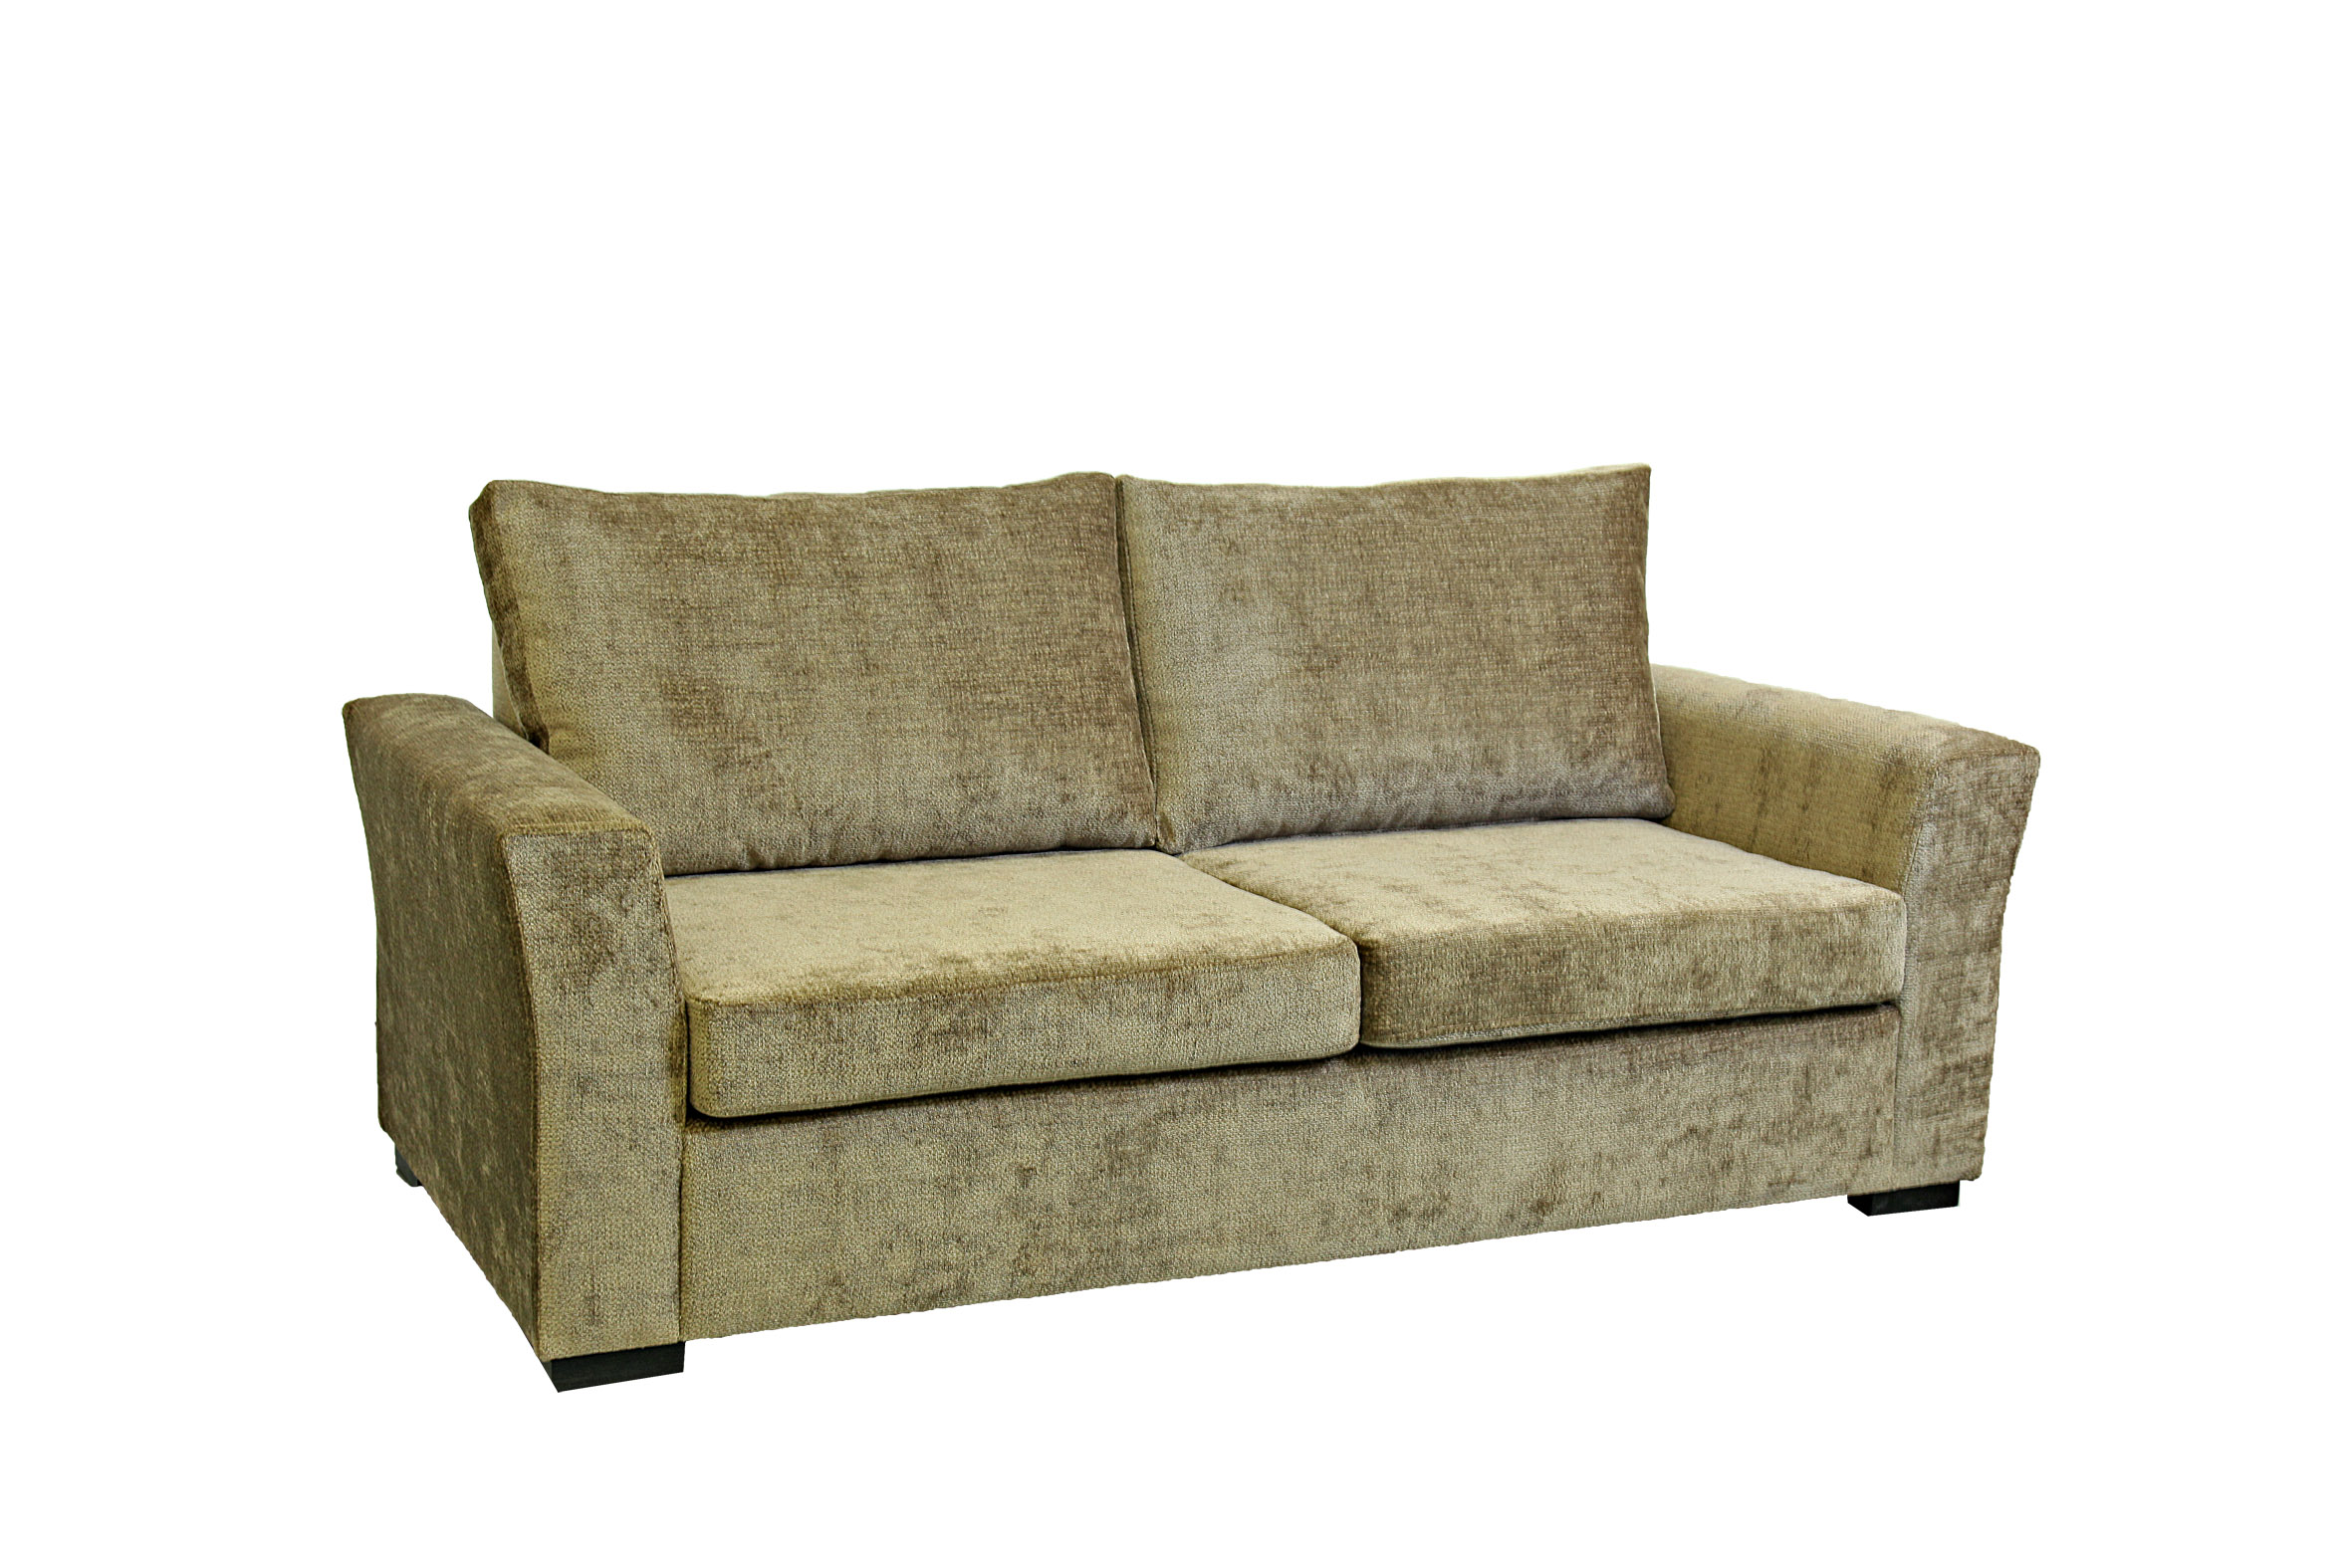 buy sectional sofa bed photo - 6